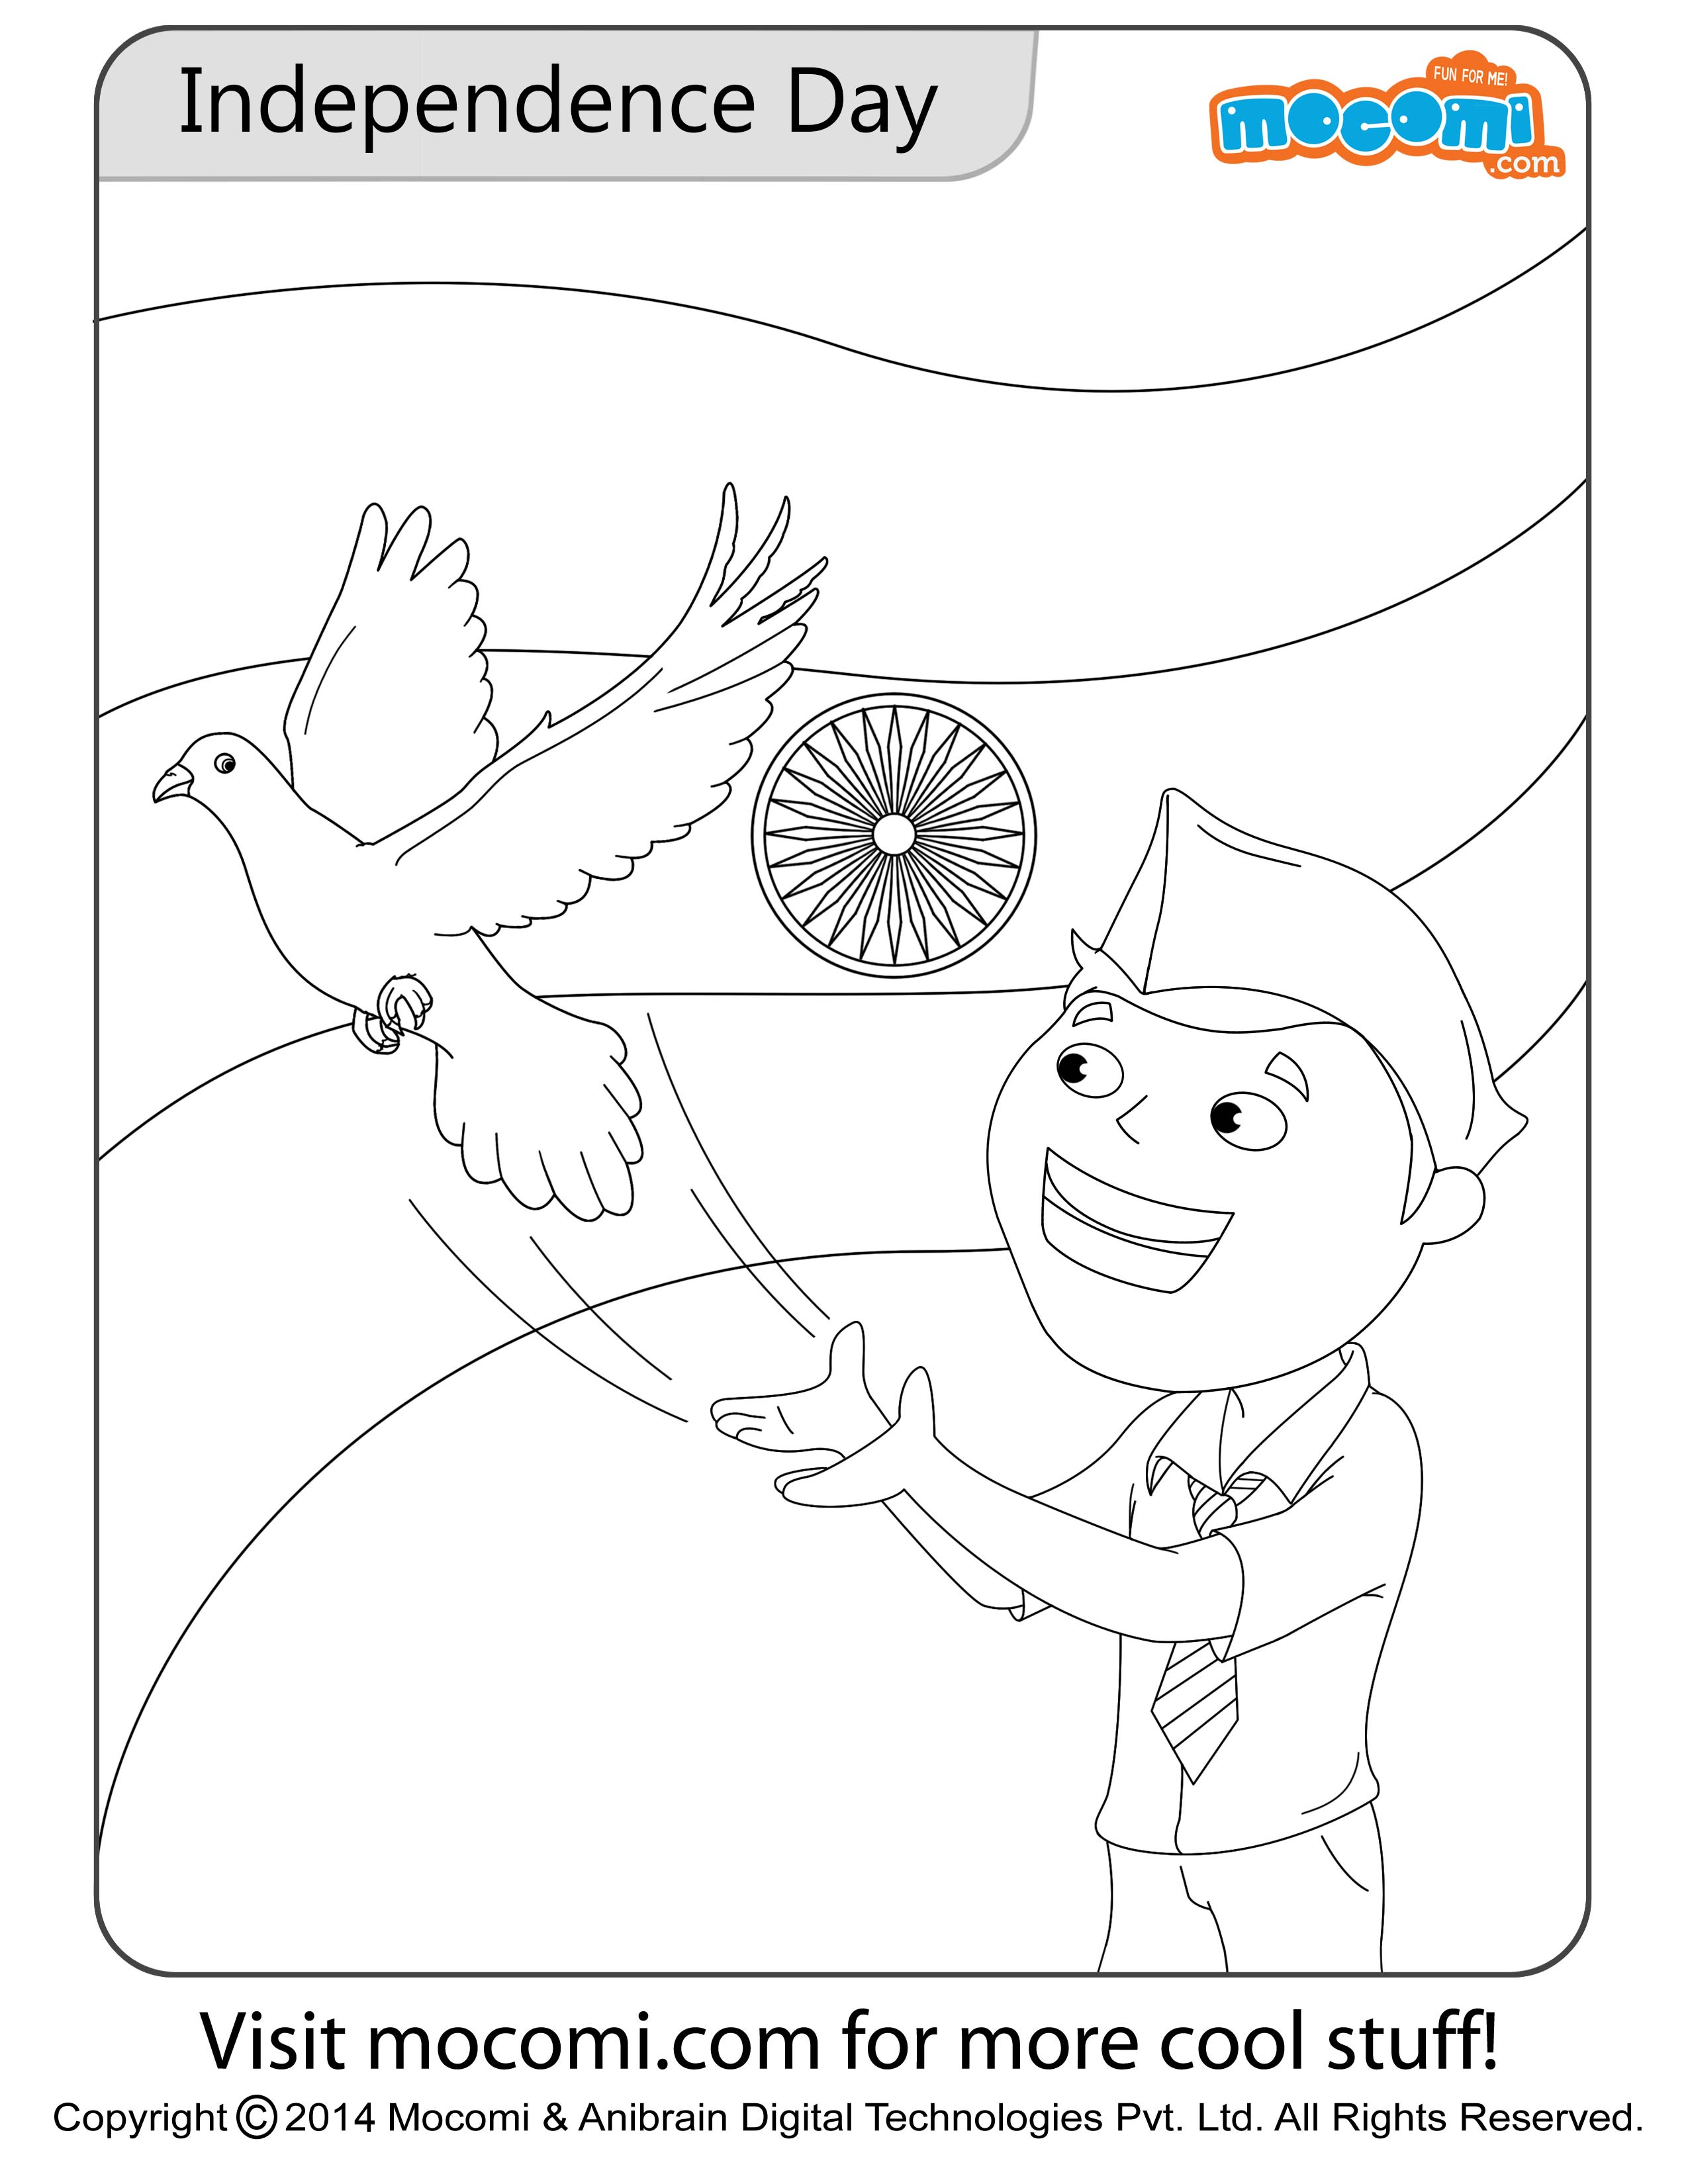 Independence Day – Colouring Page